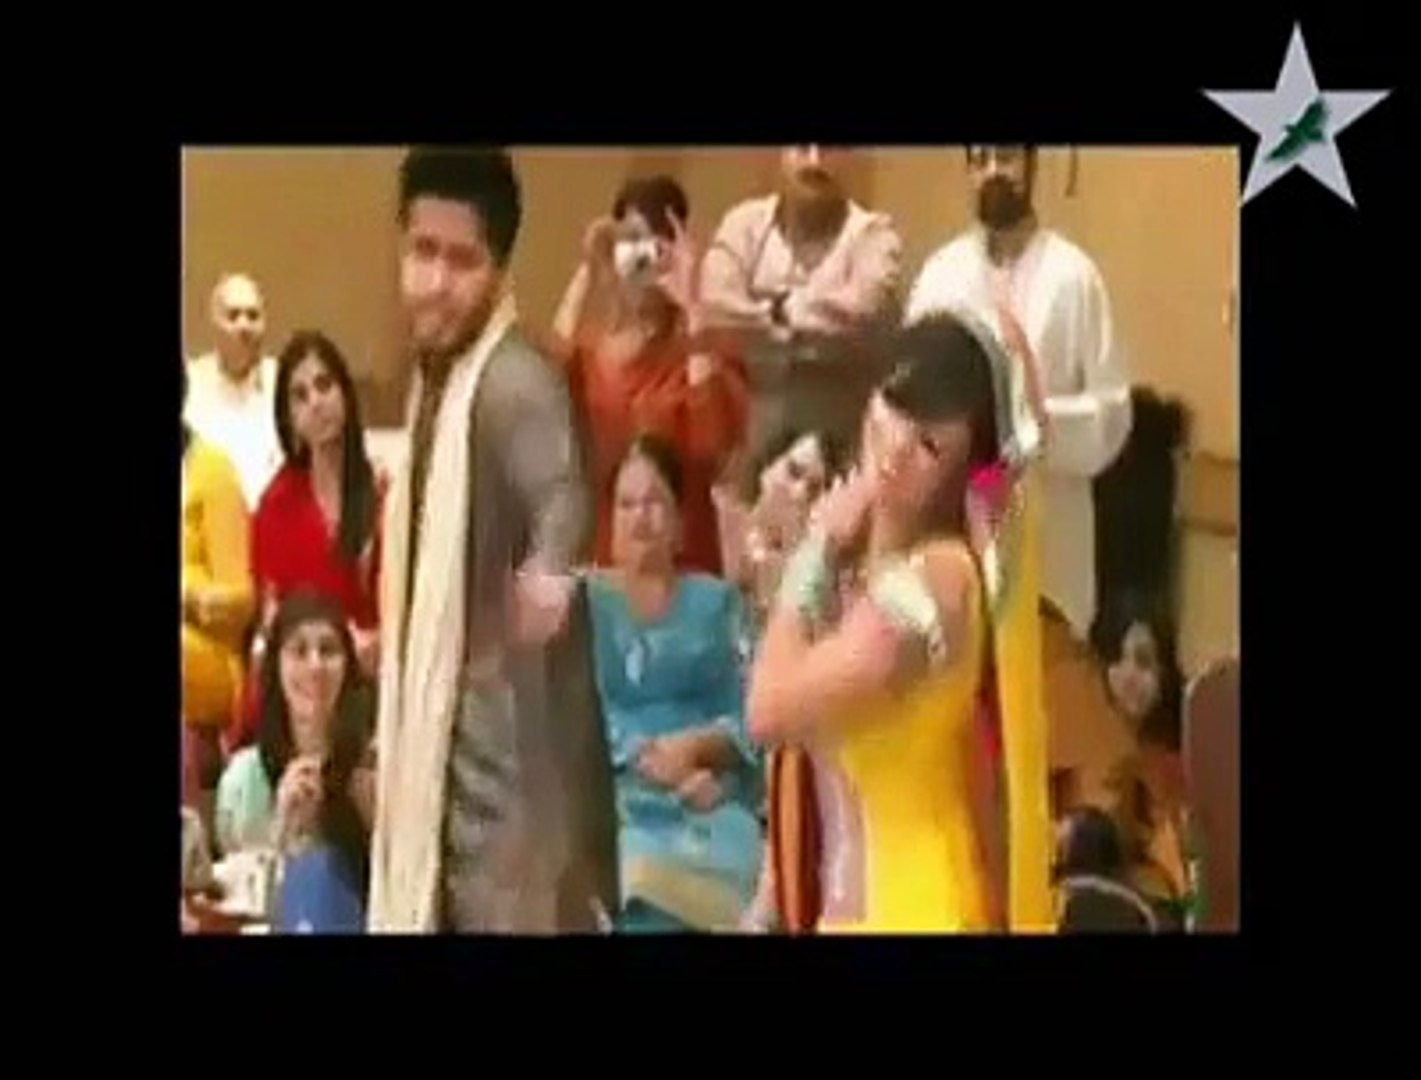 Azad Pakistan Episode 3 Parts 9( Protect yourself-Effect of Indian Movies and Dramas on Our Nation )